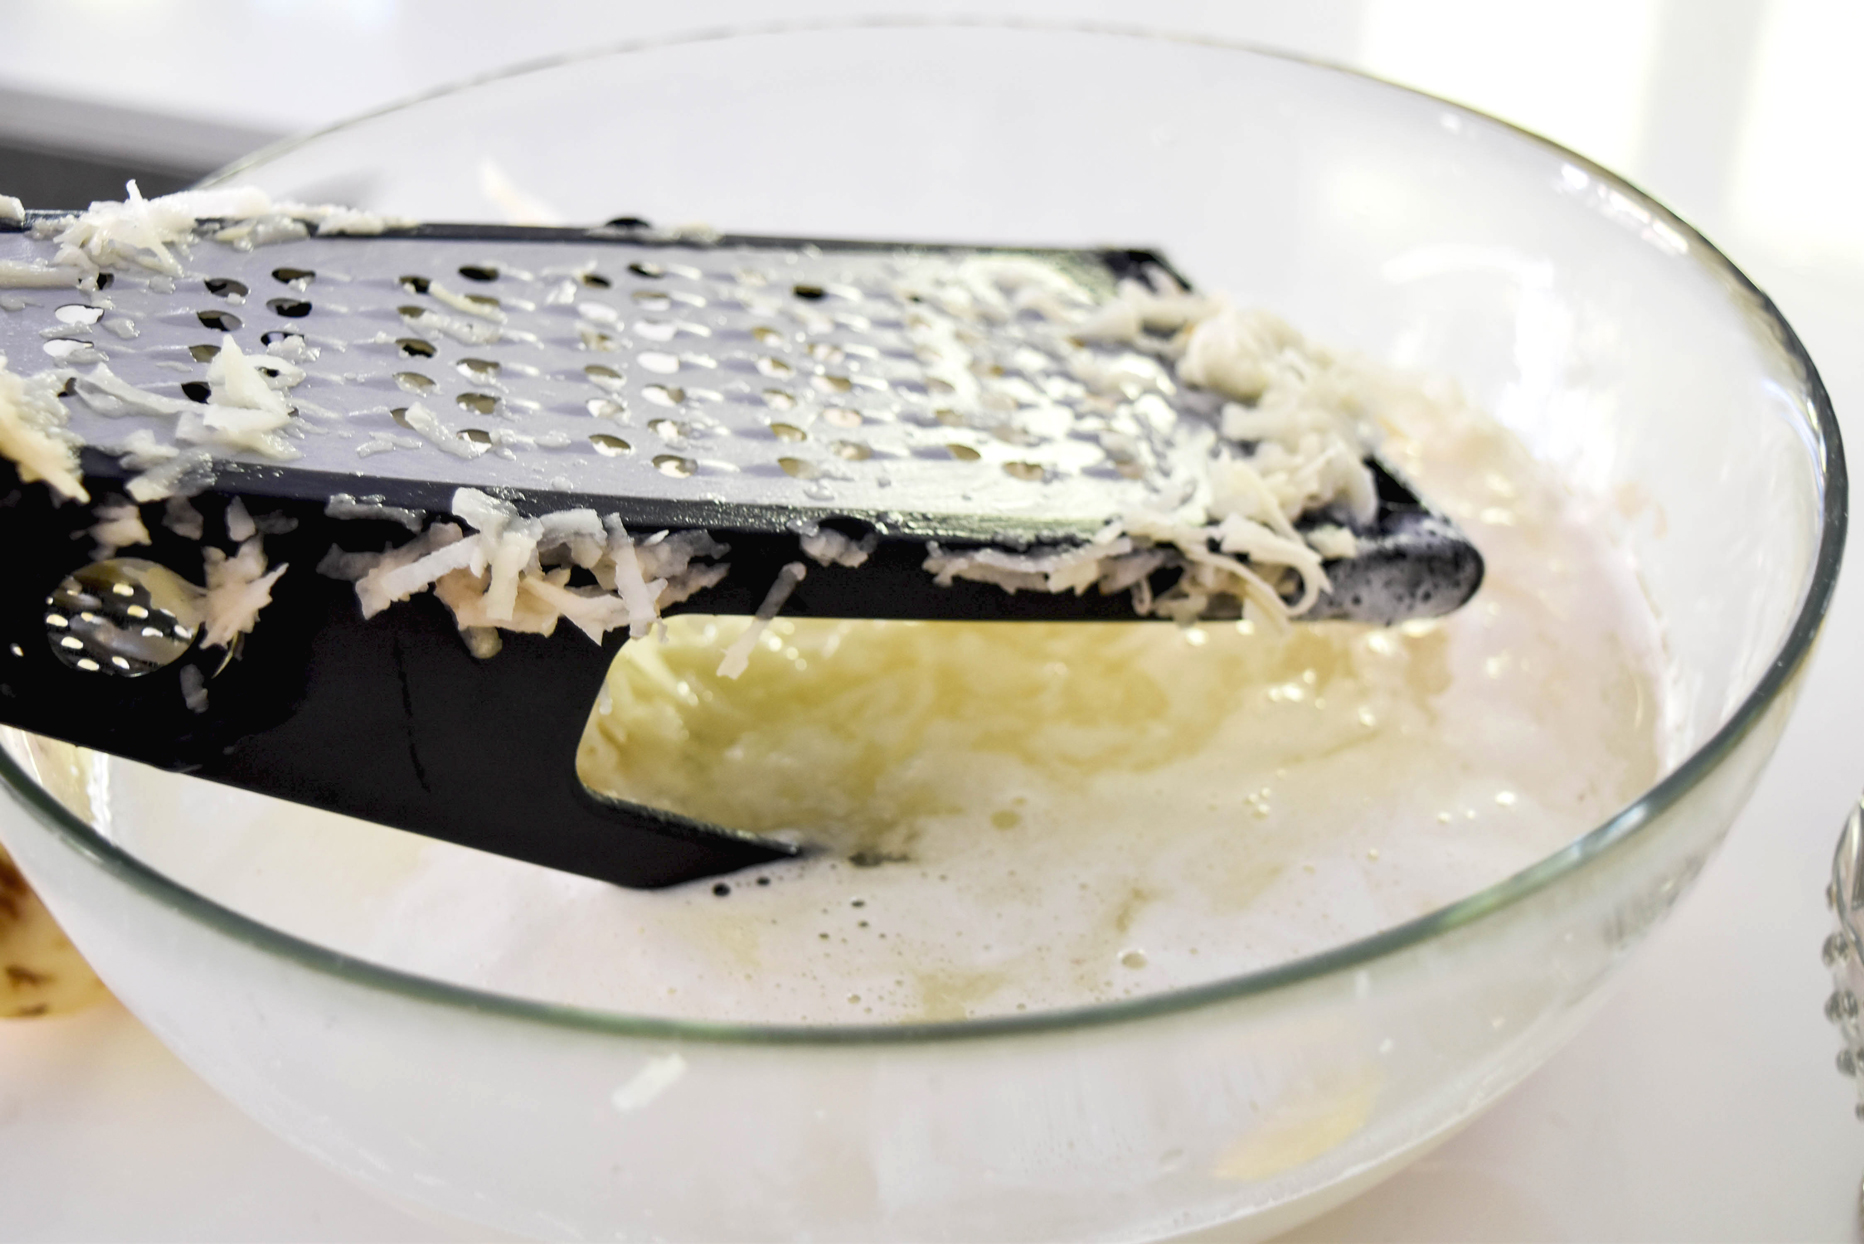 Grater being used on potatoes to make latkes